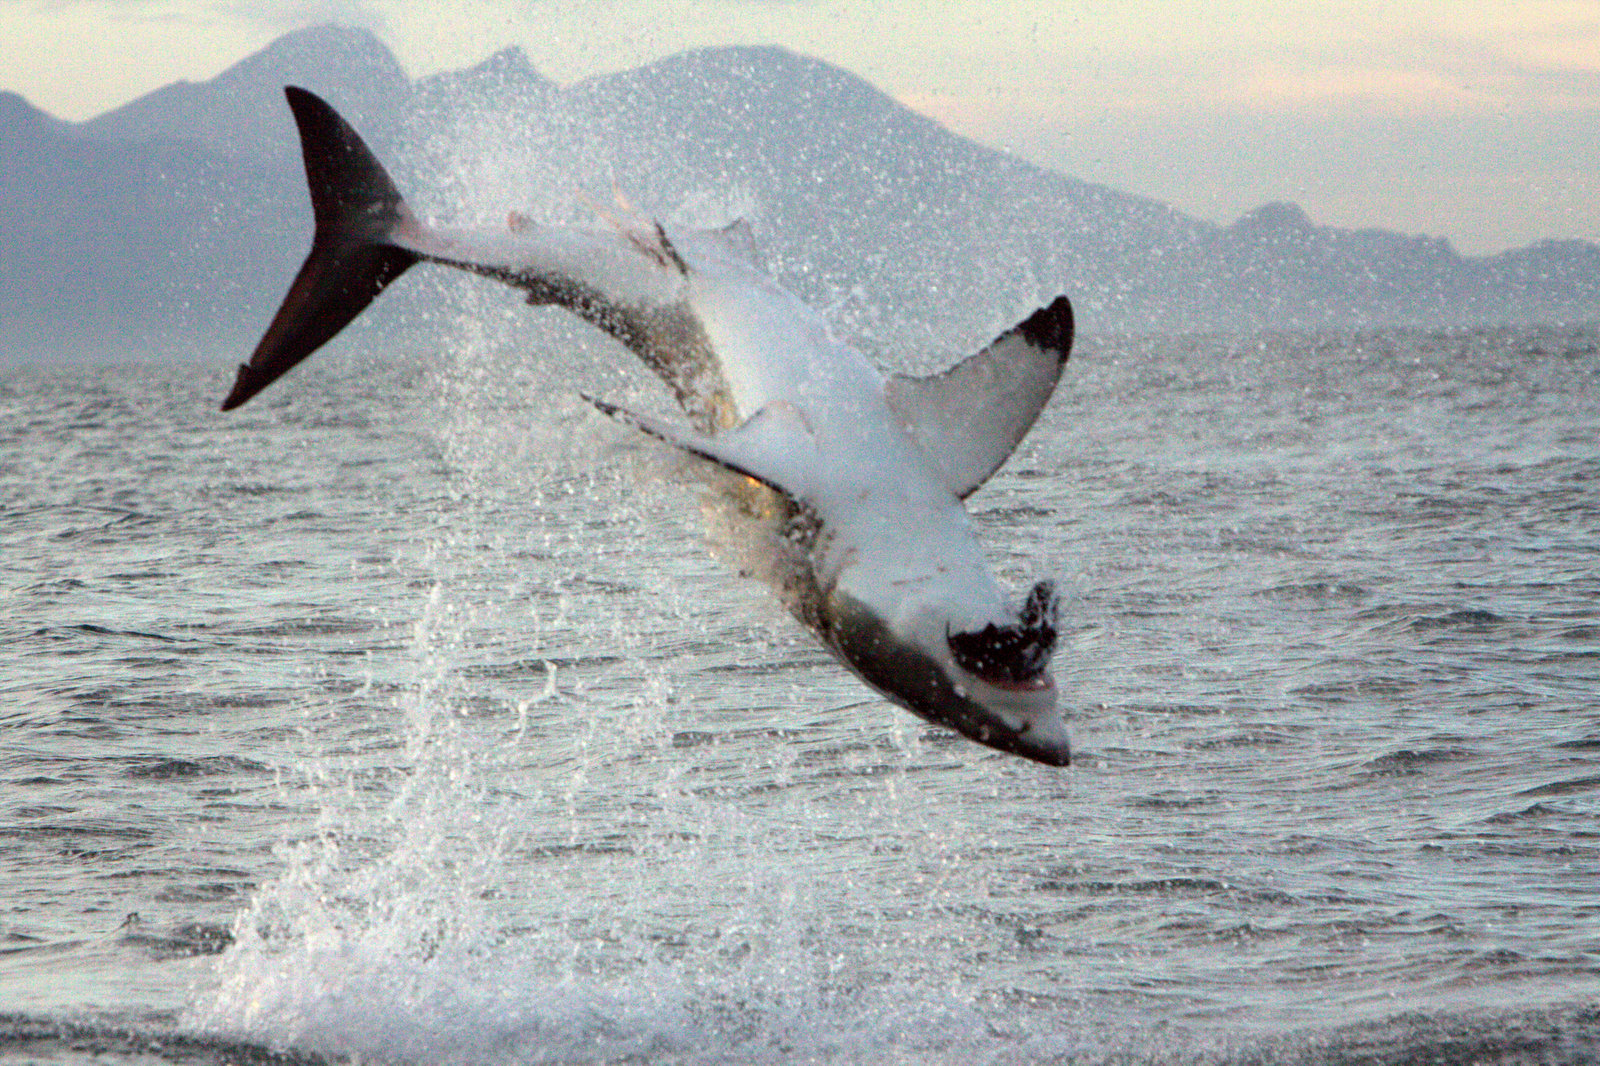 Flying Great White Shark of False Bay